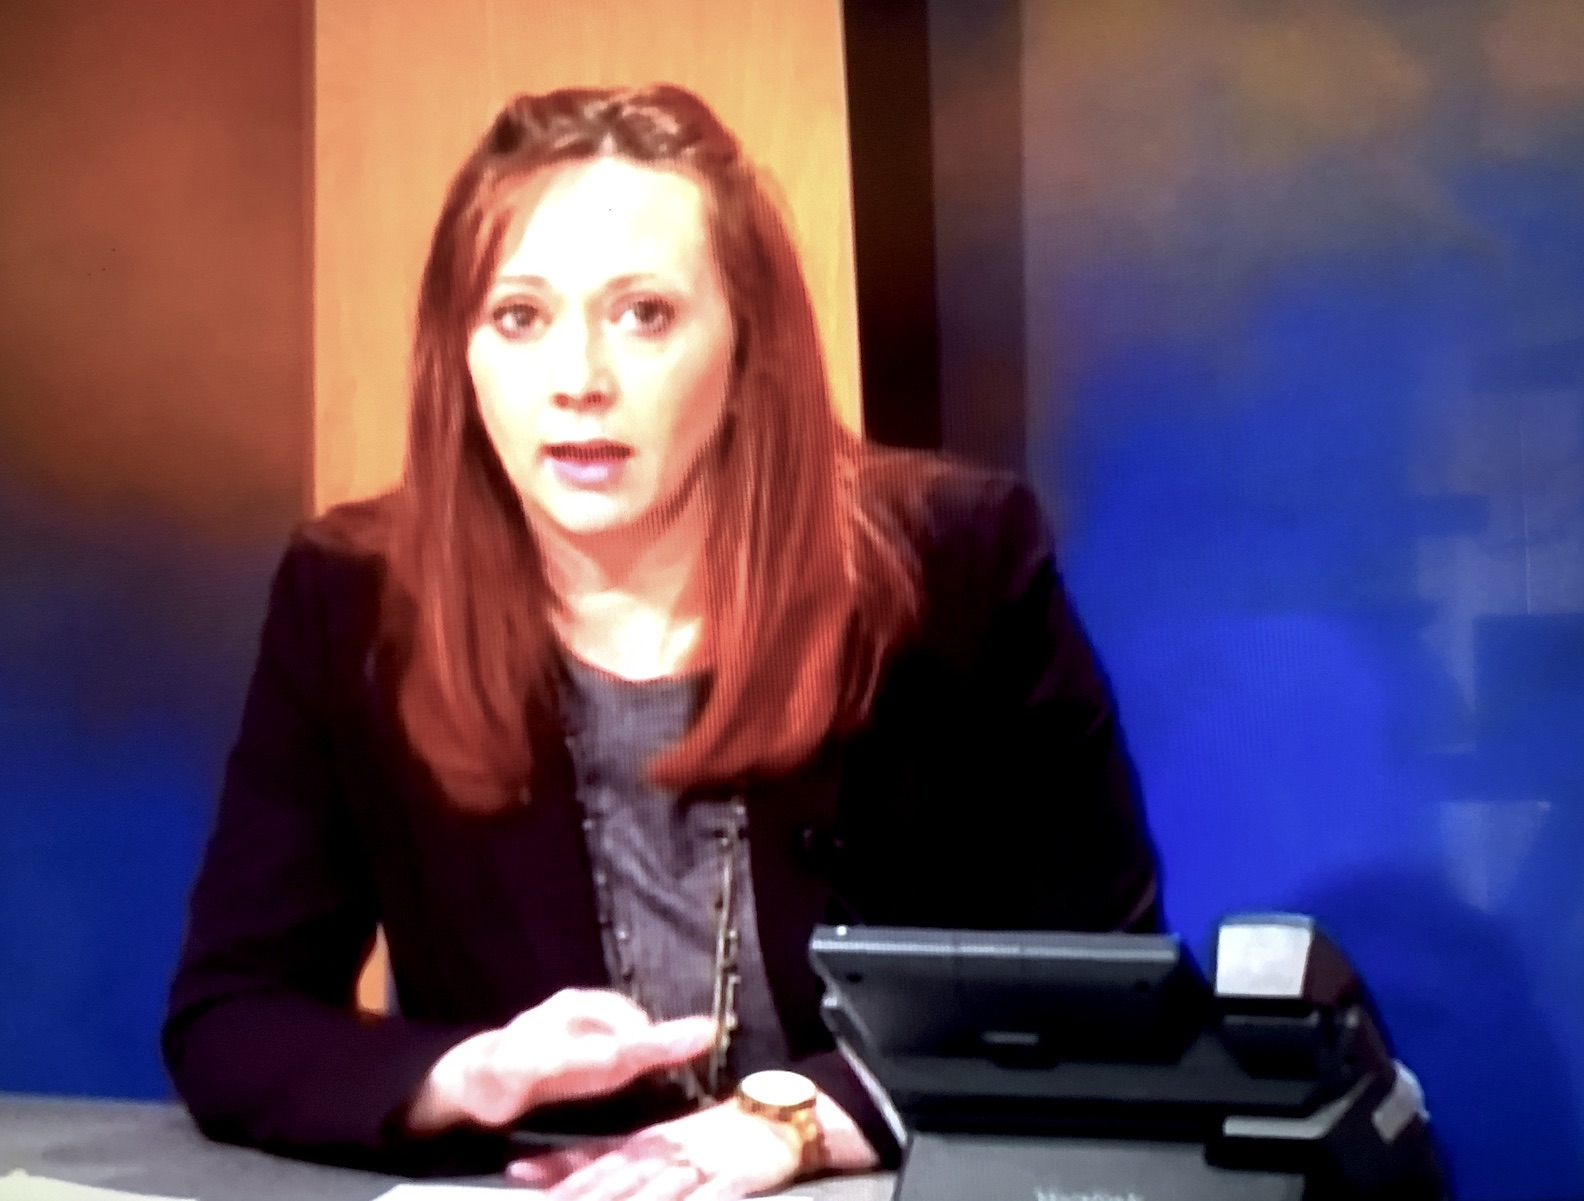 Becky Wydysh addressed Niagara County residents and media outlets Friday on LCTV.